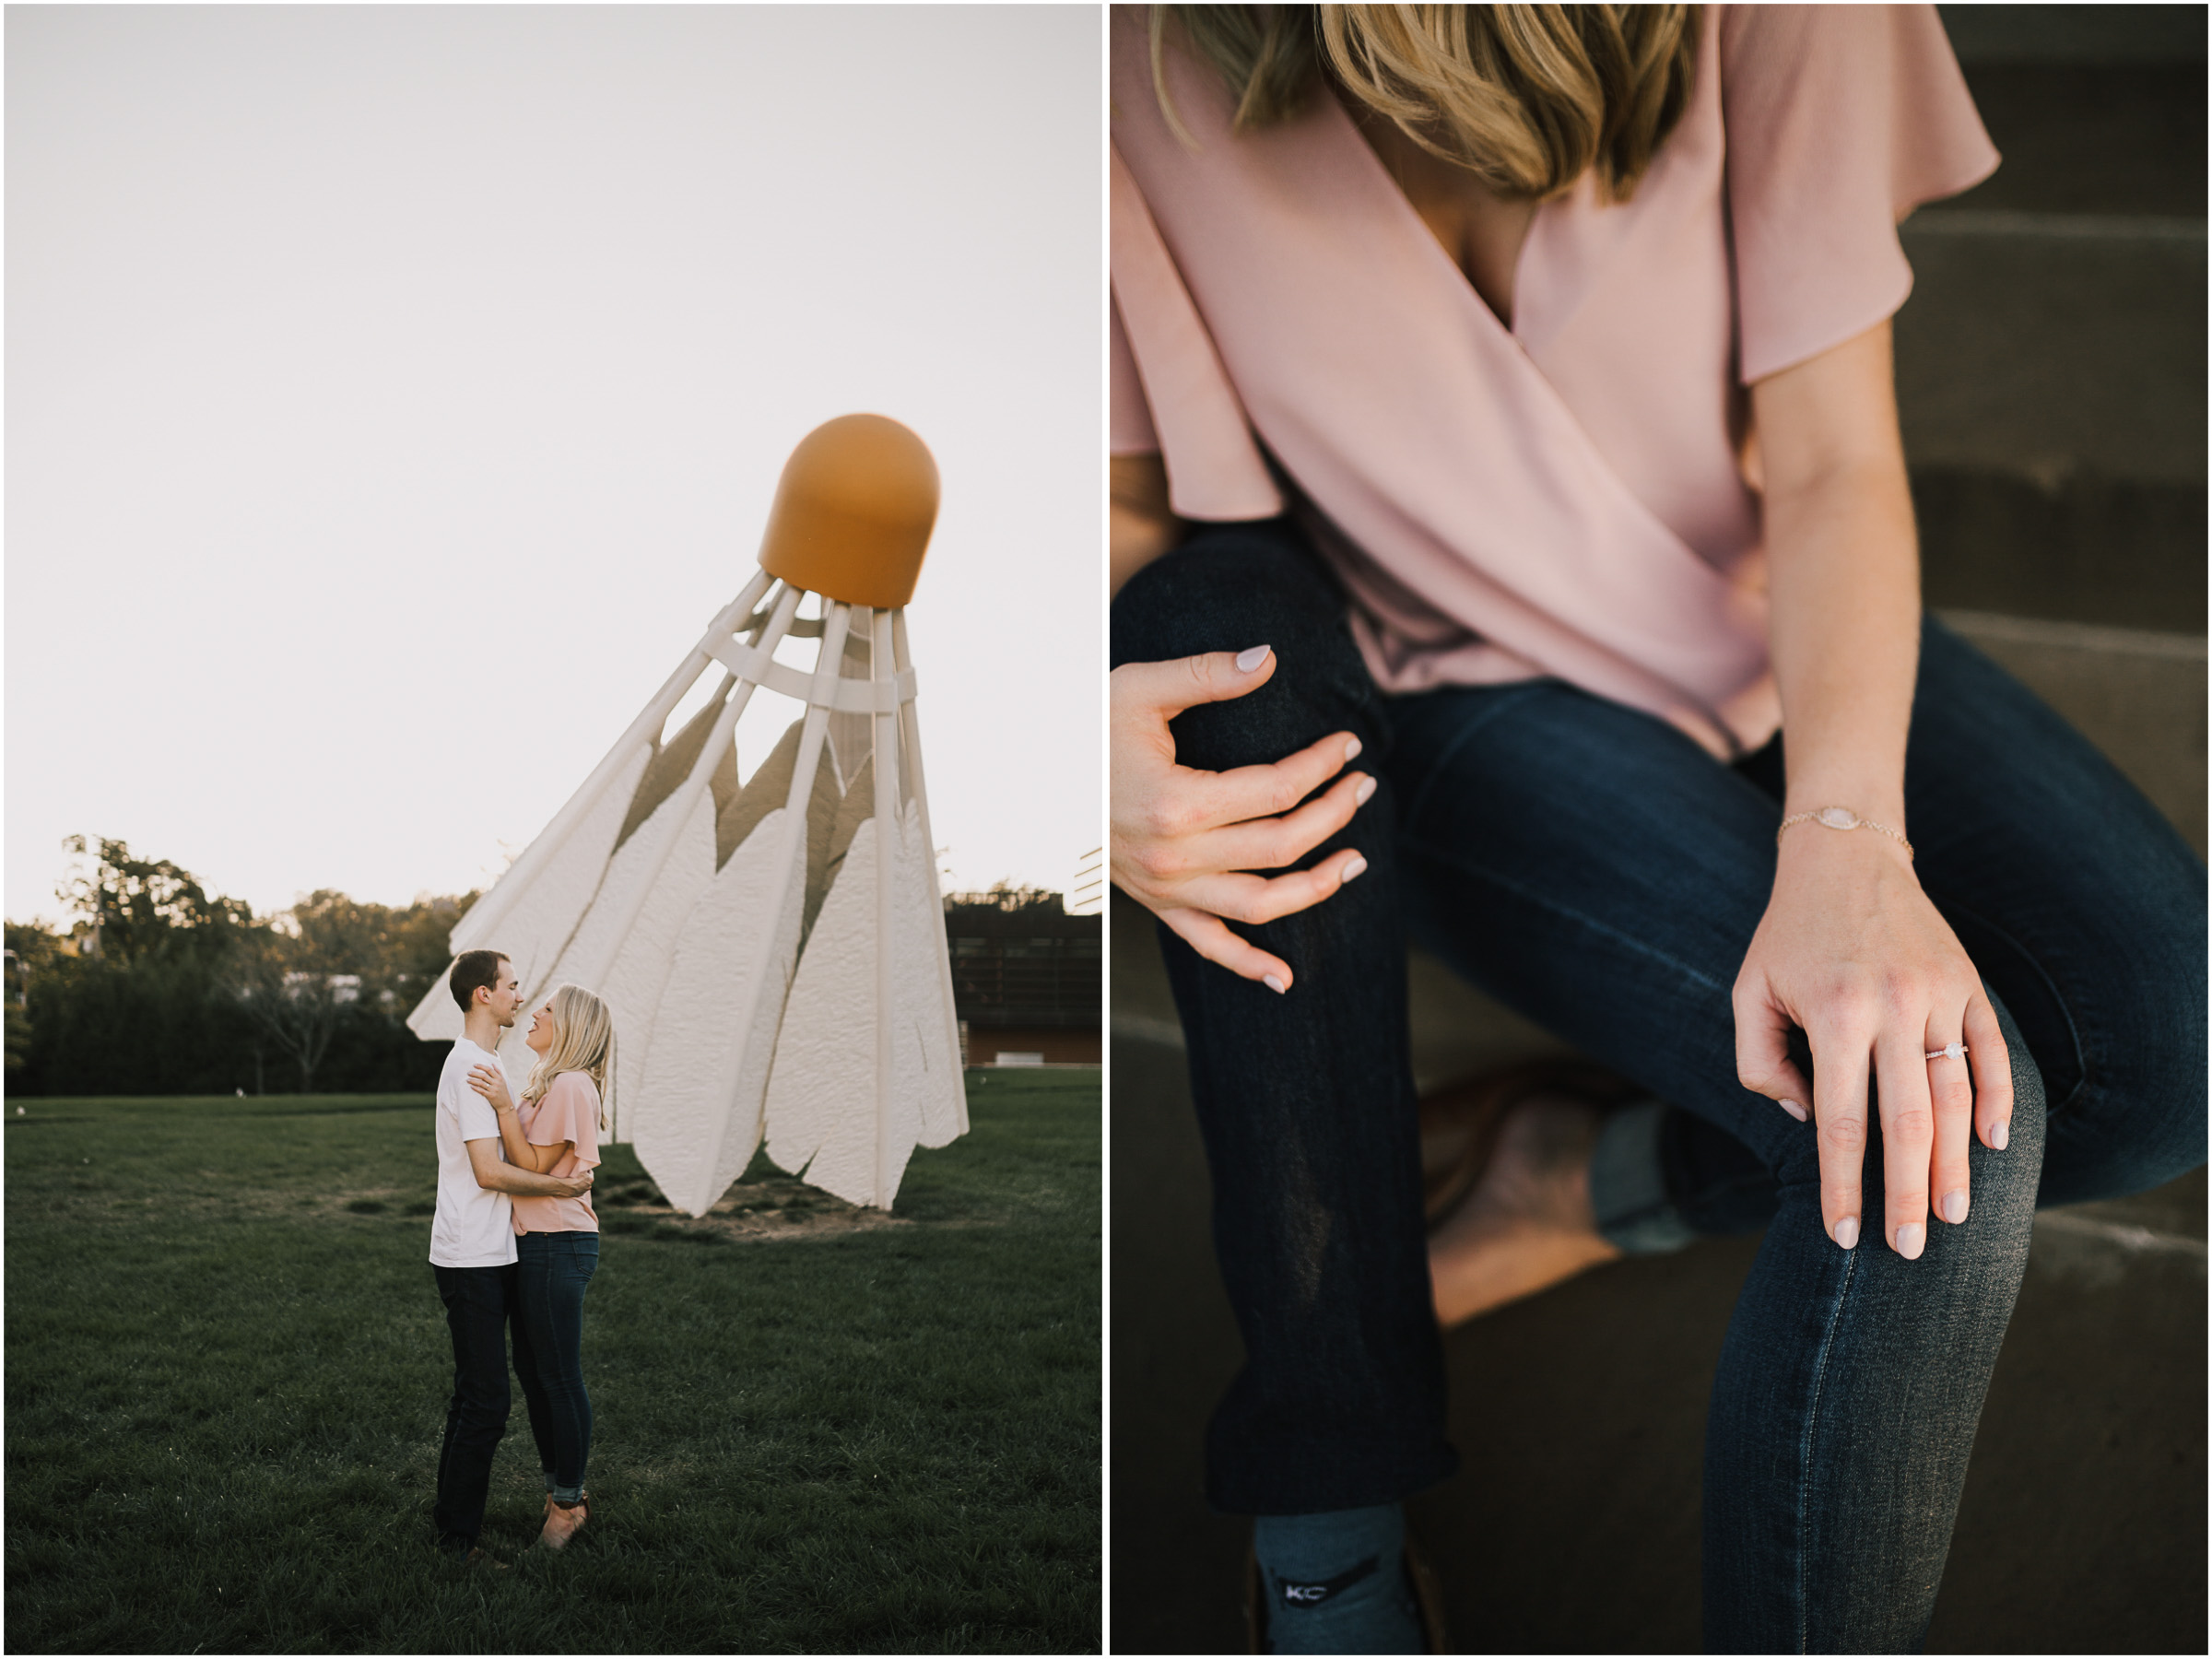 alyssa barletter photography nelson atkins art museum classic summer engagement session with dog-11.jpg